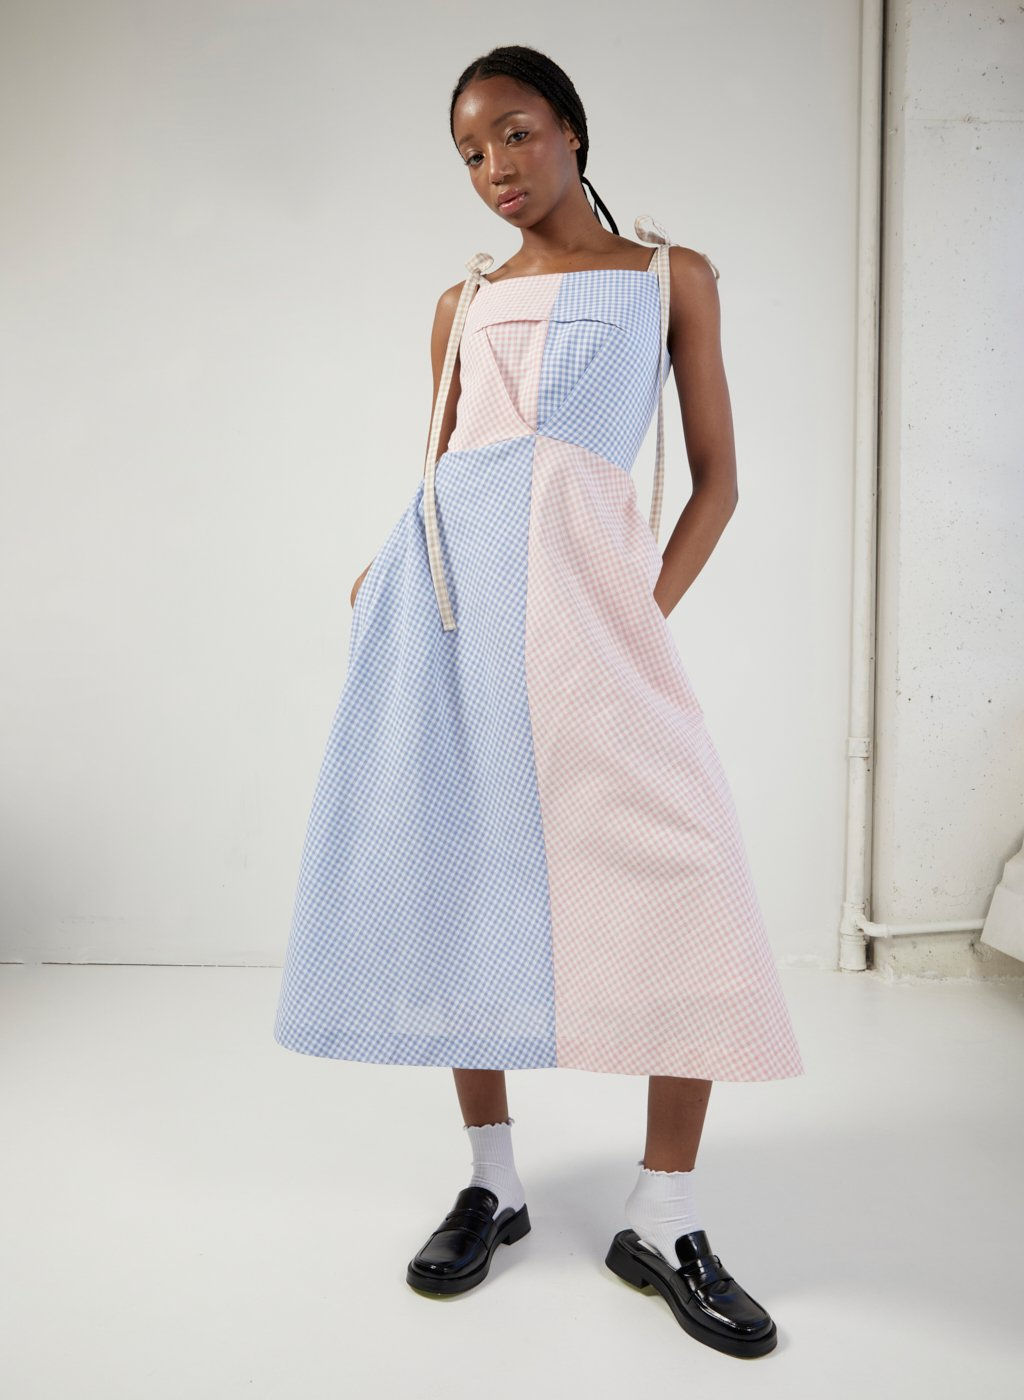 Eliza Faulkner Half/Half Dress (Gingham)